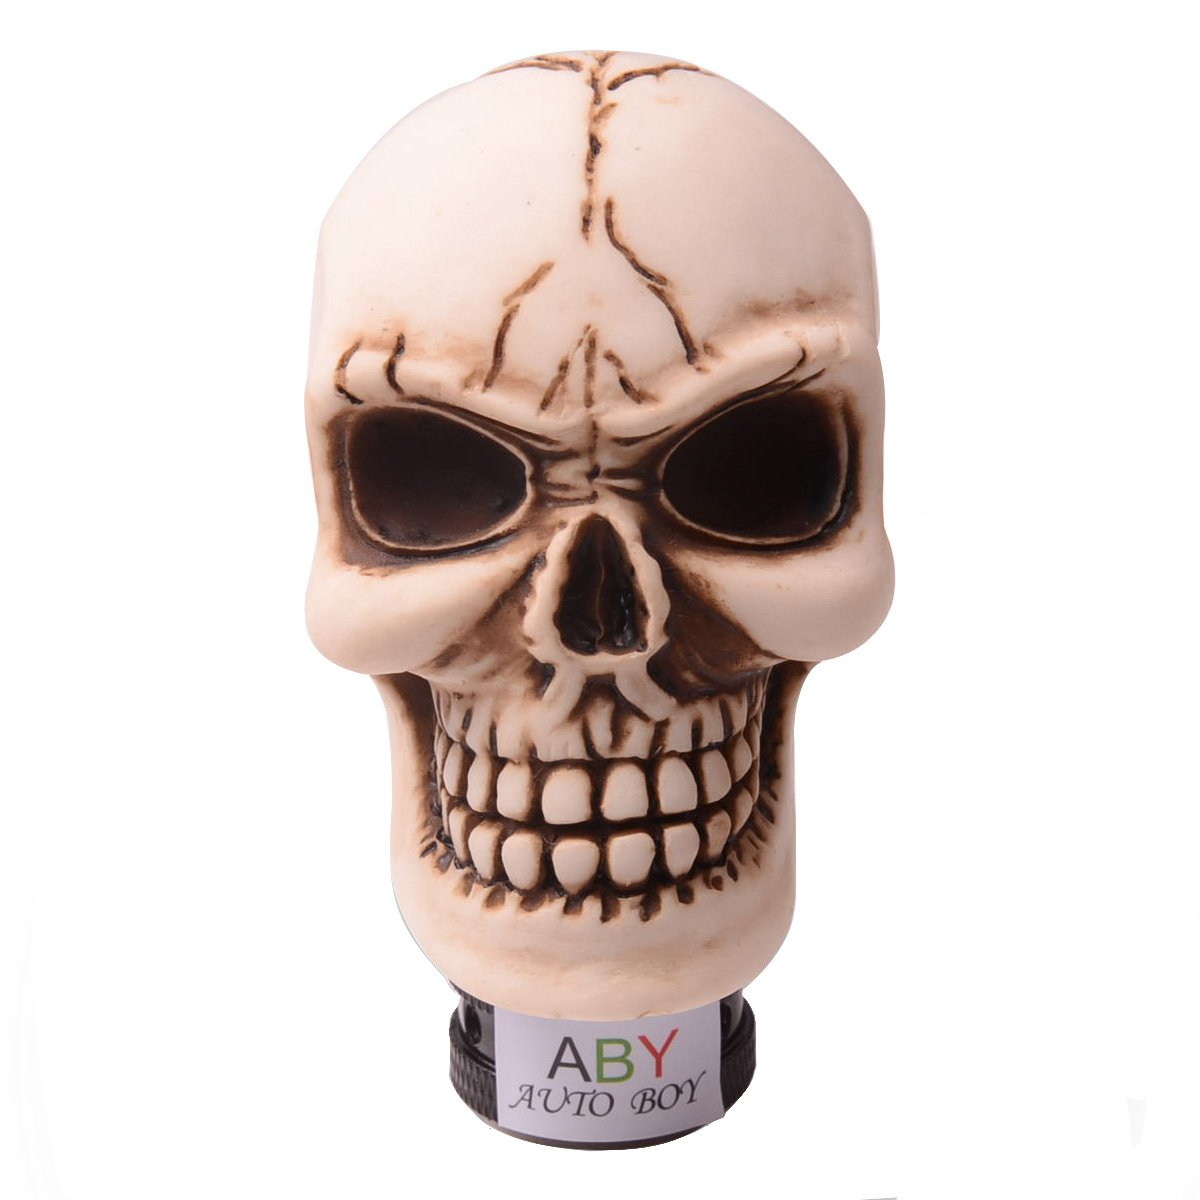 ABy Skull Head Gear Stick Shift Shifter Knob Lever Cover Universal Fit For Most Manual transmission vehicles(Silver) AutoBoy